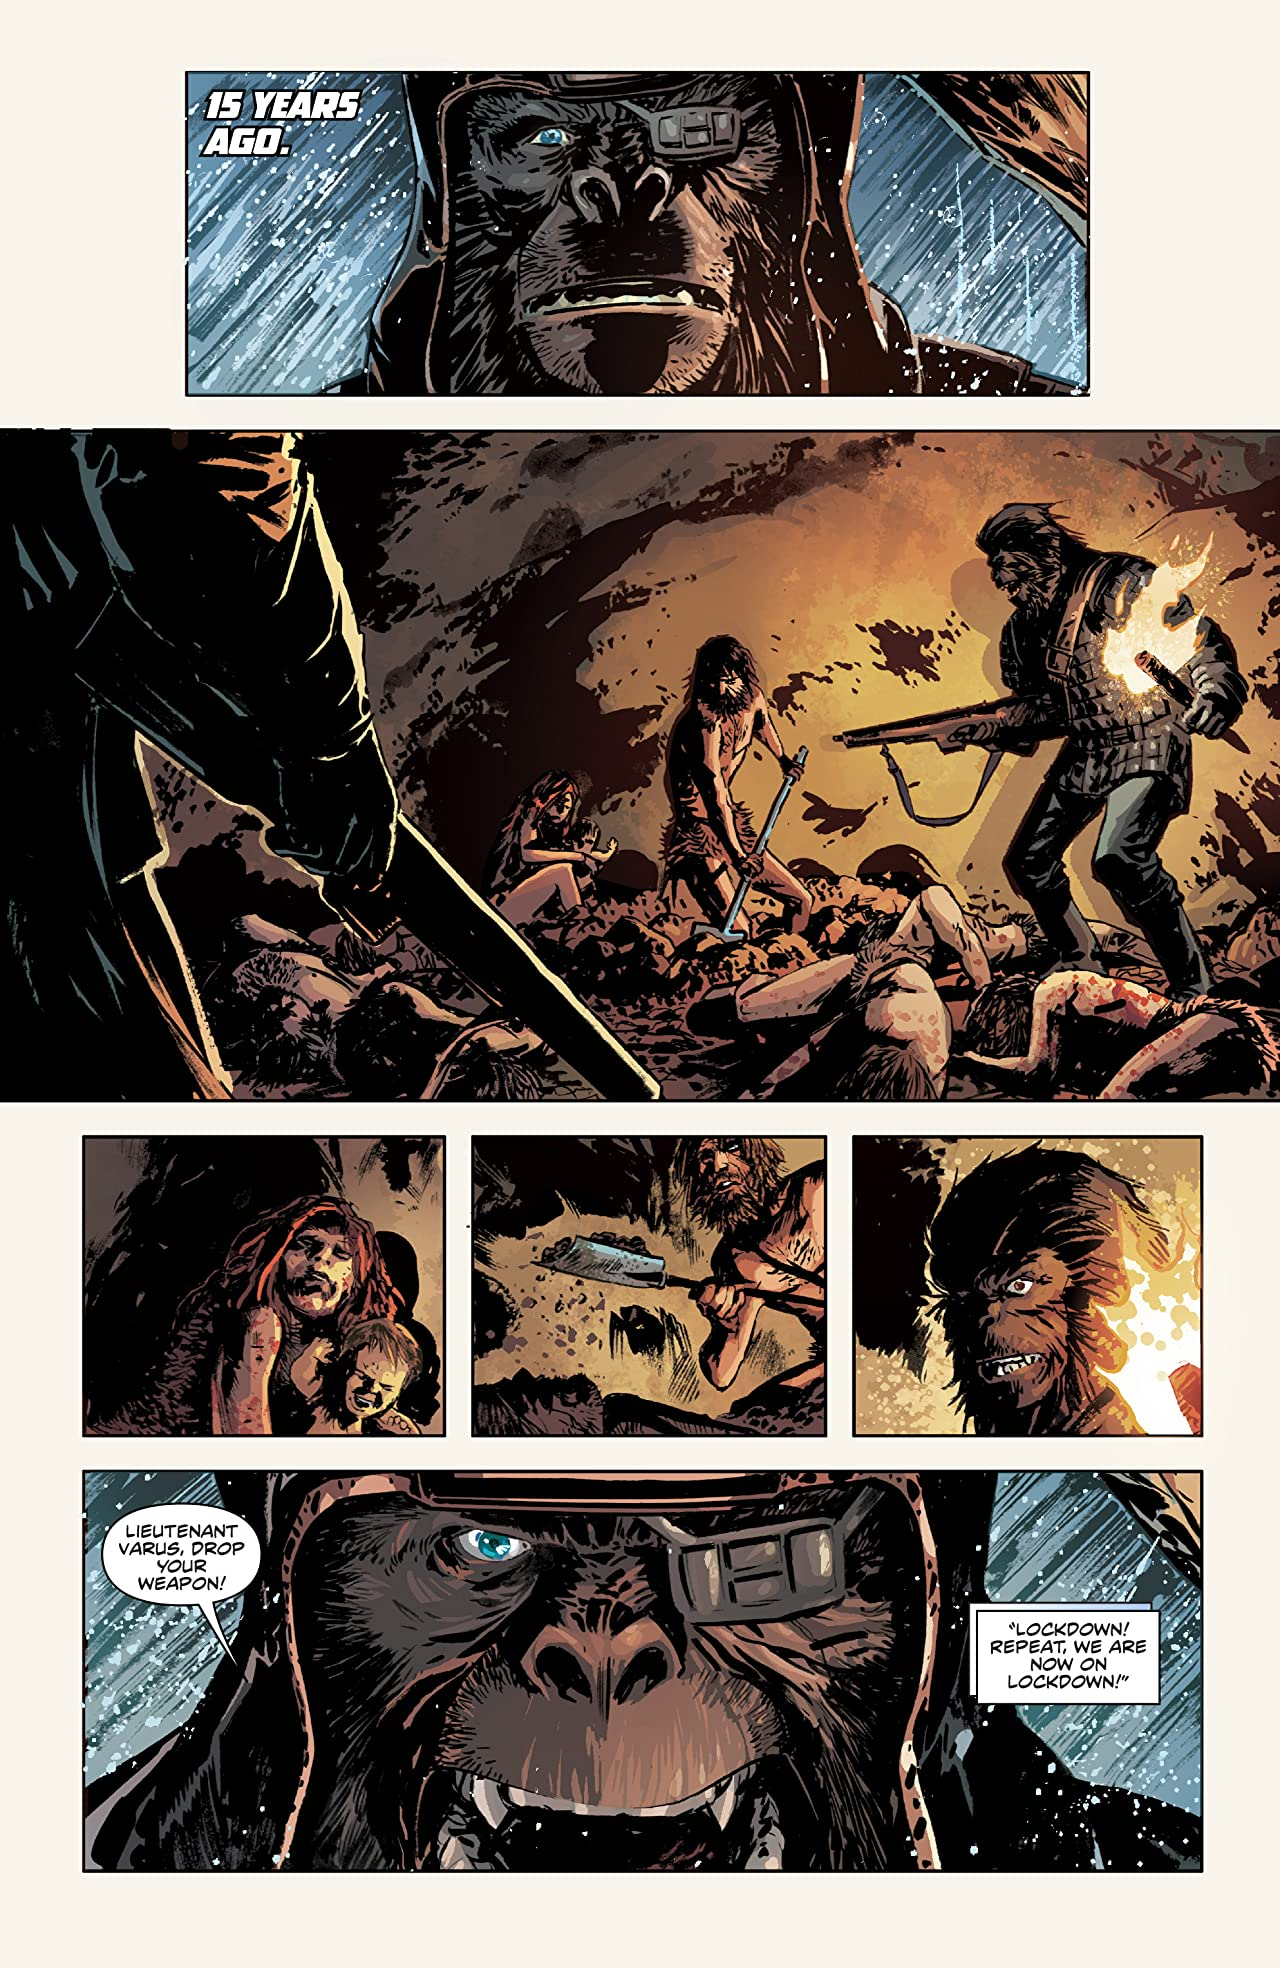 Betrayal of the Planet of the Apes #3